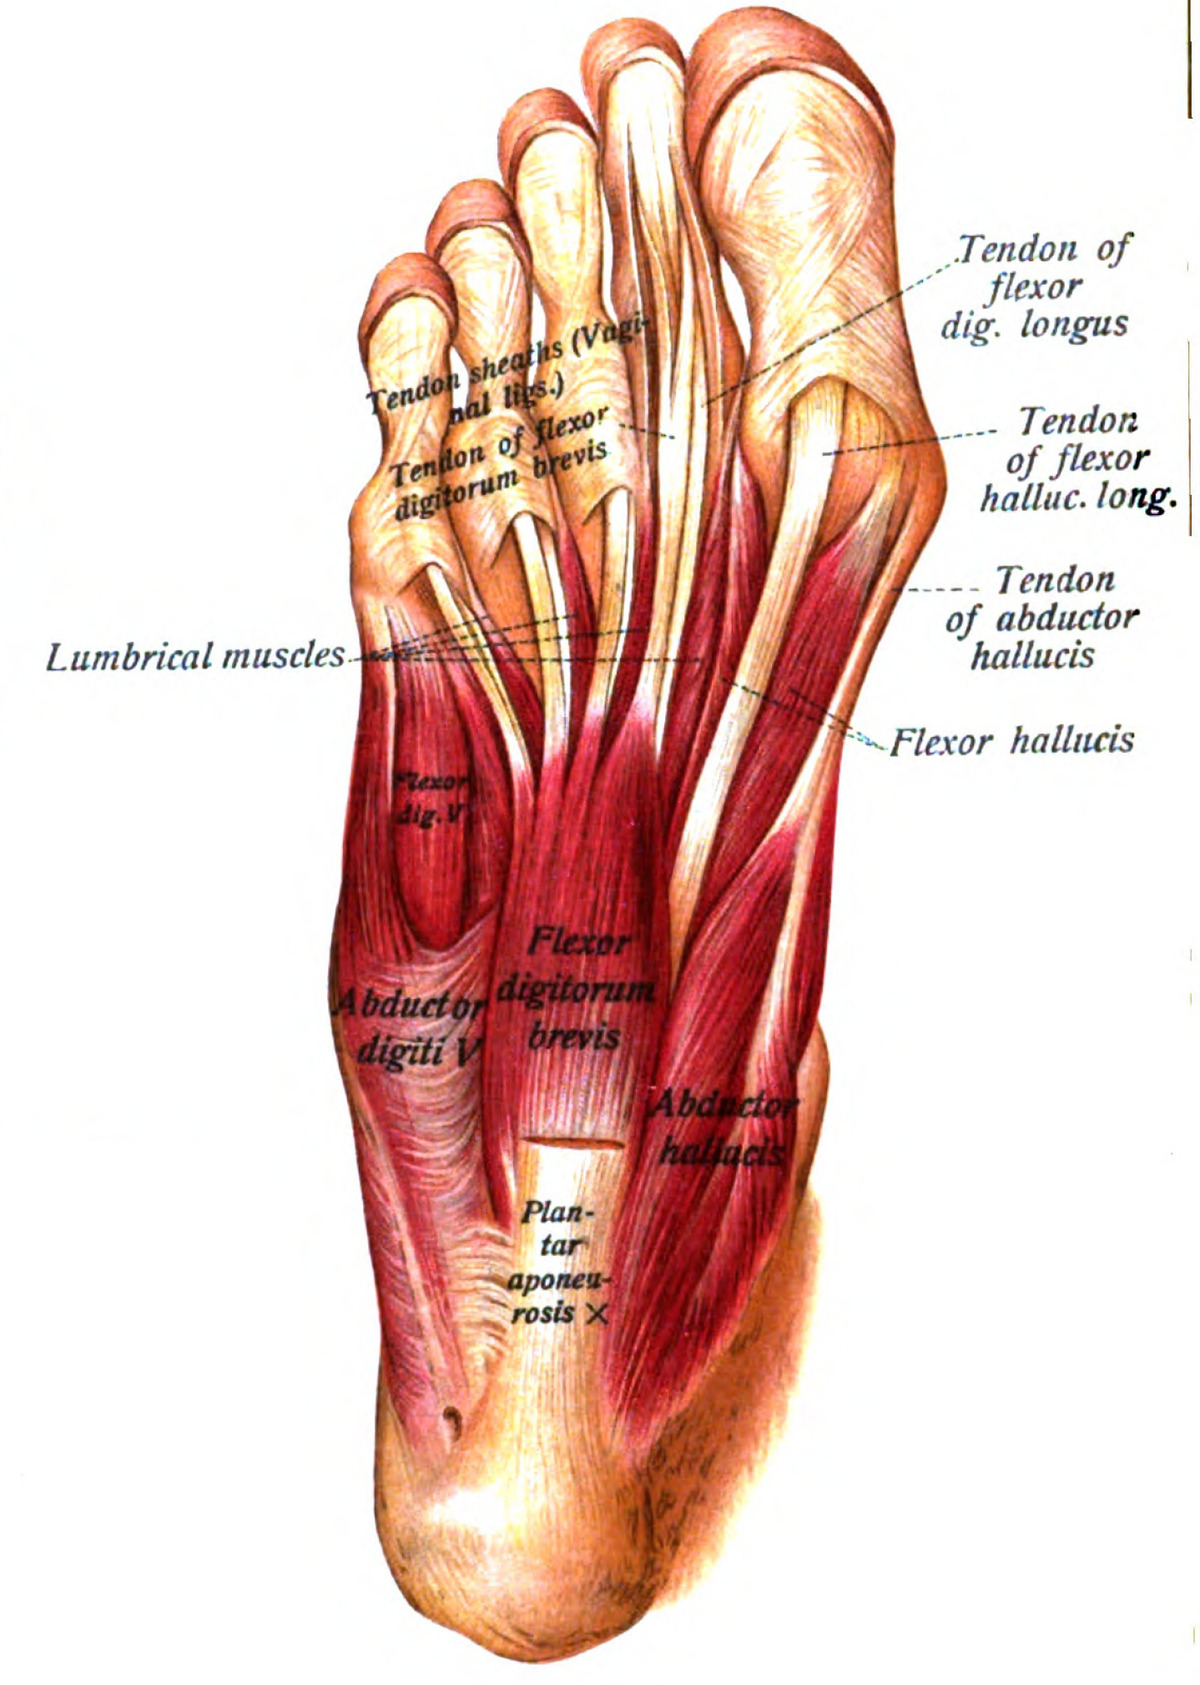 Abductor hallucis muscle - Wikipedia